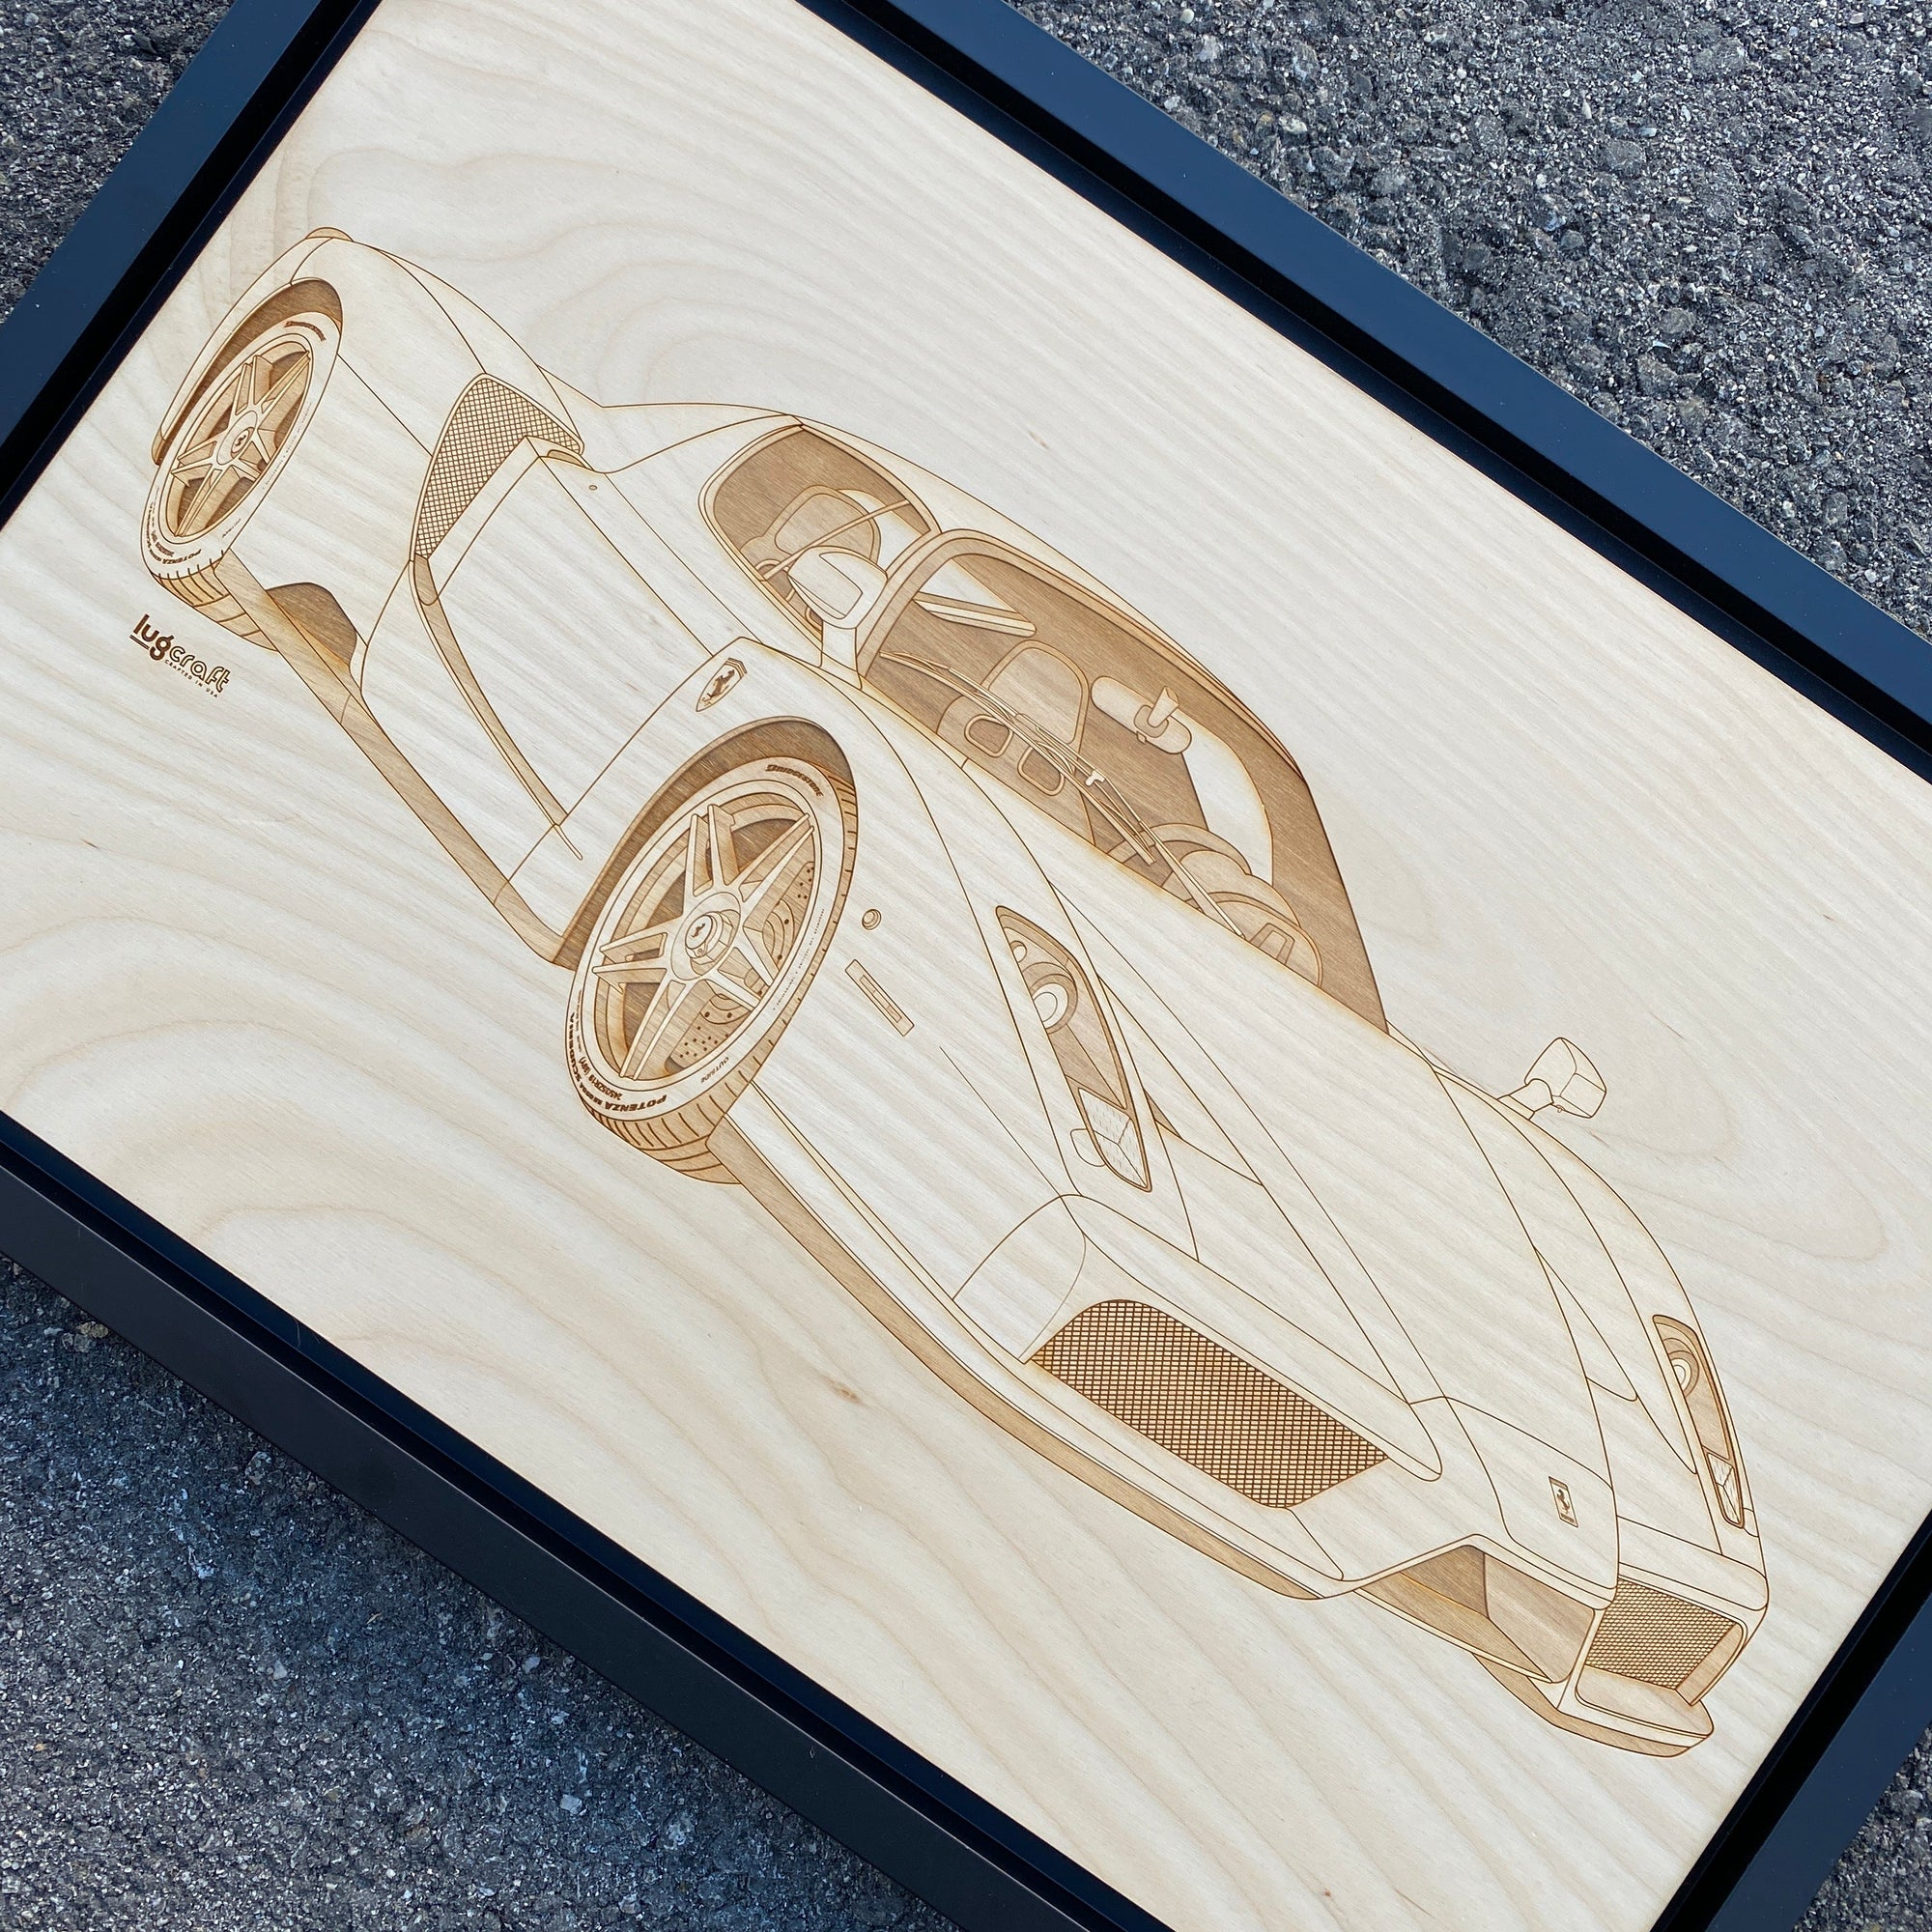 Ferrari Enzo Framed Wood Engraved Artwork - Lugcraft